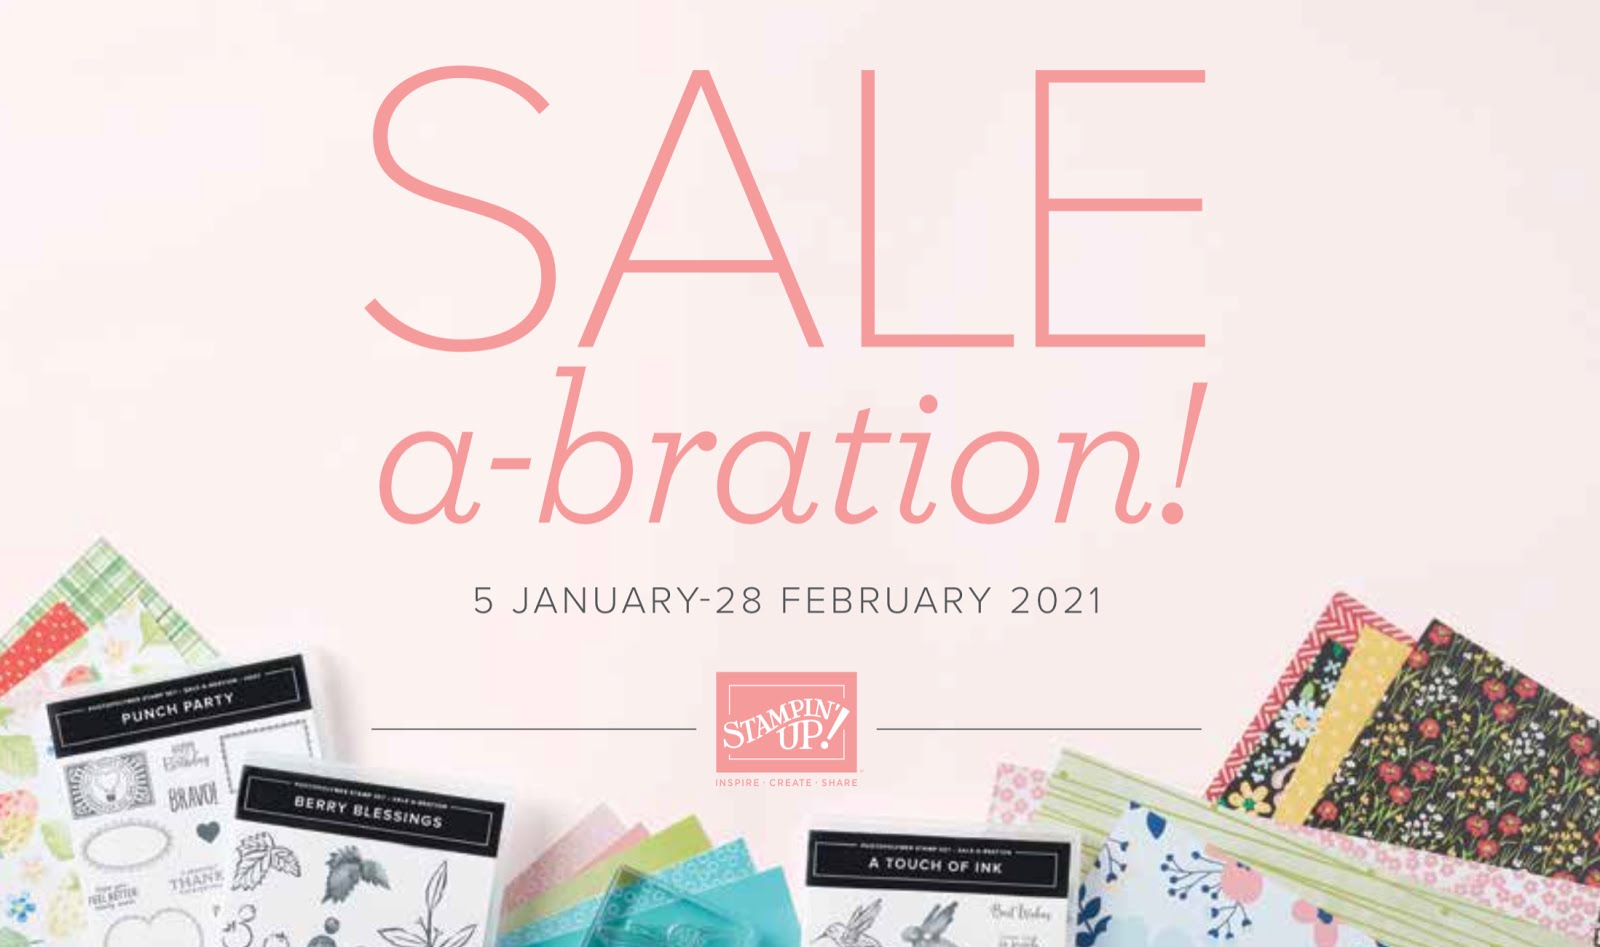 Sale a-bration